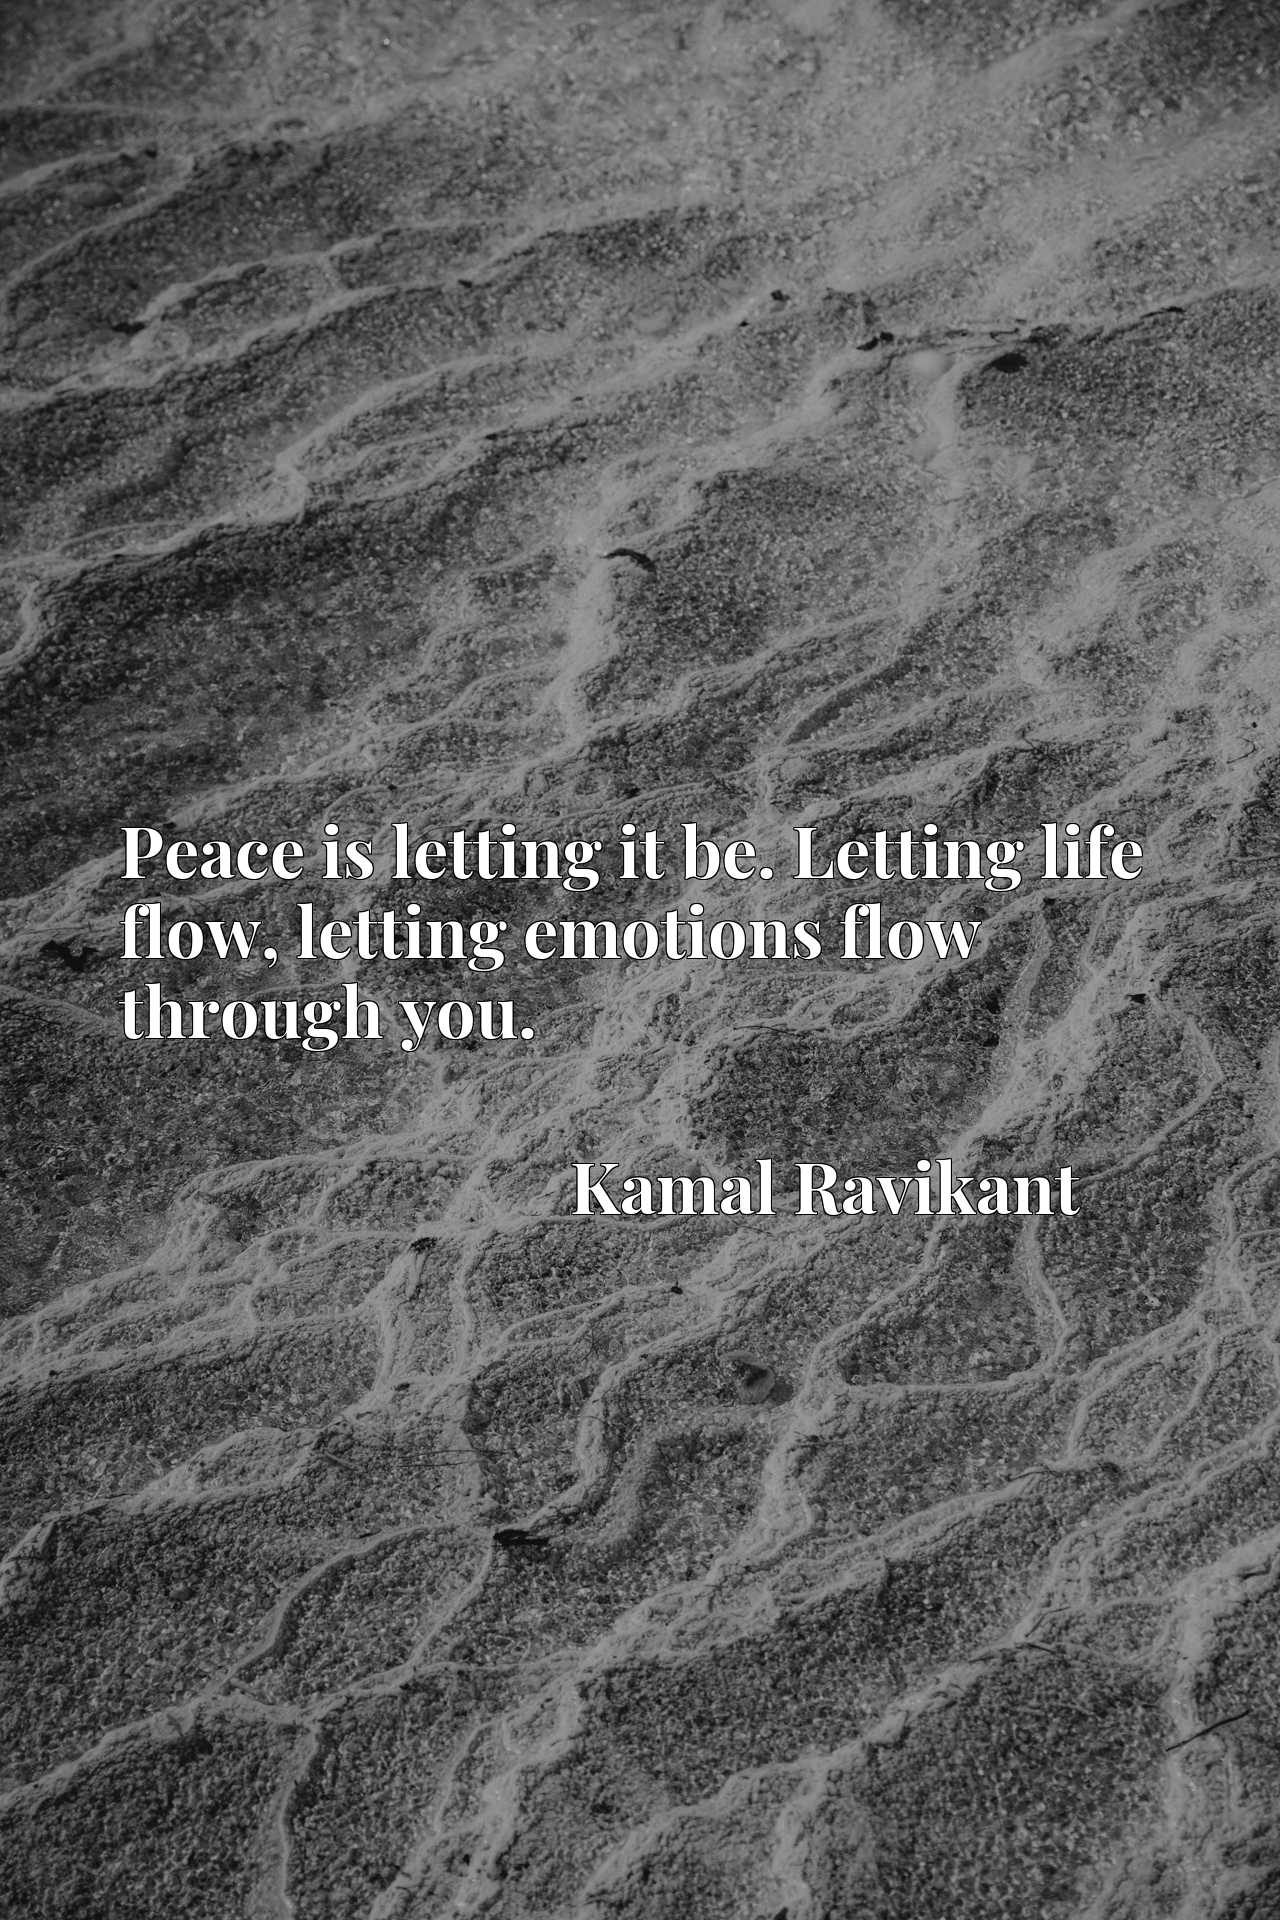 Peace is letting it be. Letting life flow, letting emotions flow through you.